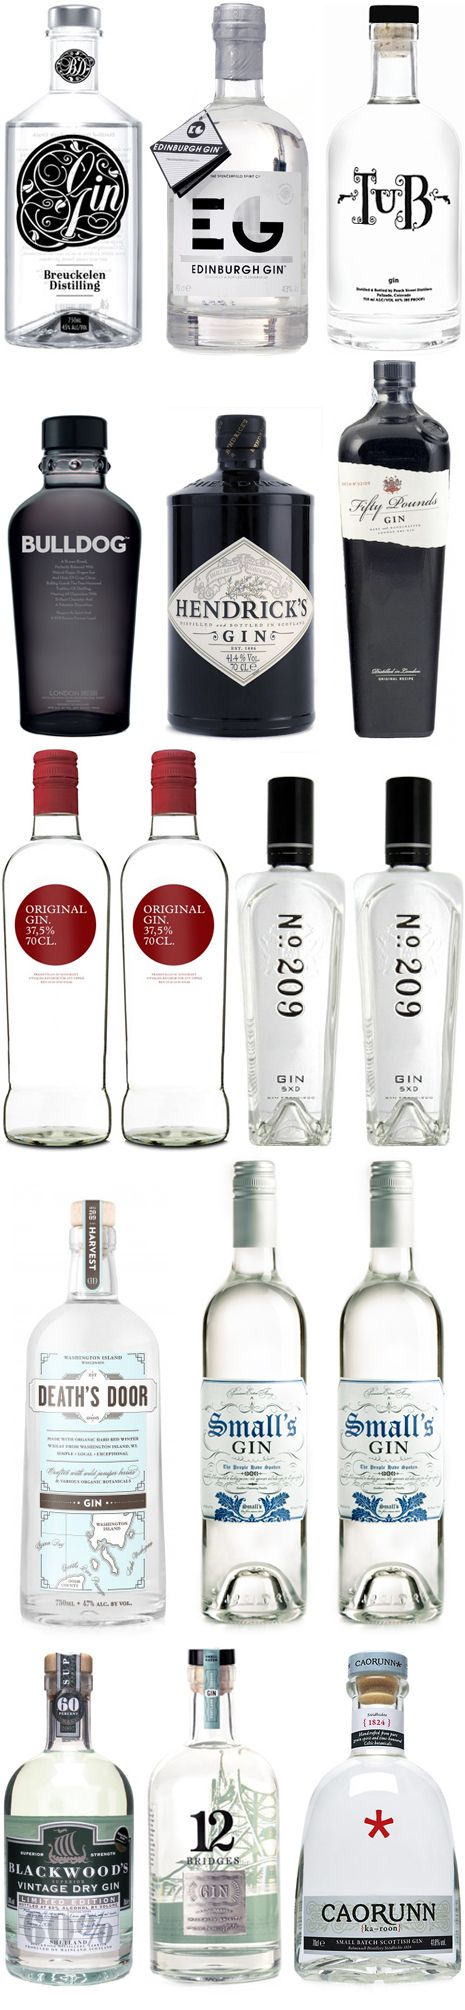 Black, White and Red Vodka - this is where elegance and sexy meet in the middle.